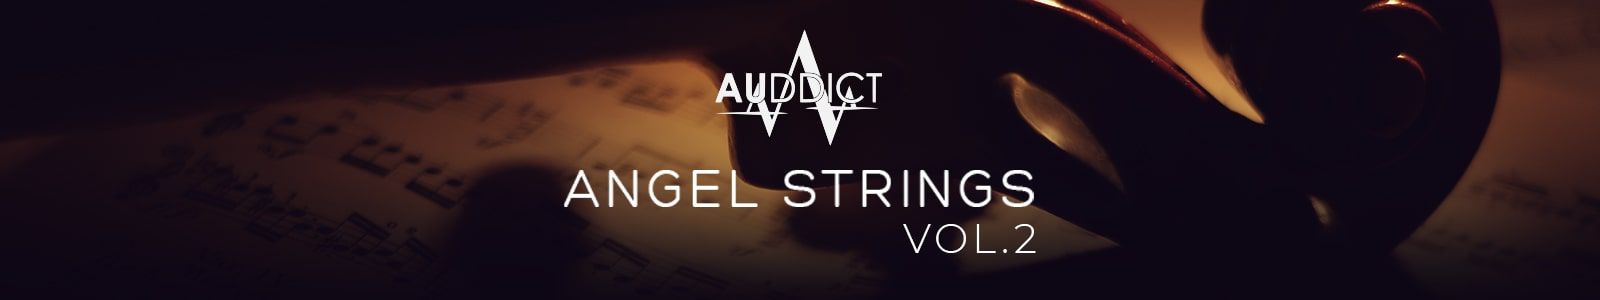 angel strings vol 2 by auddict